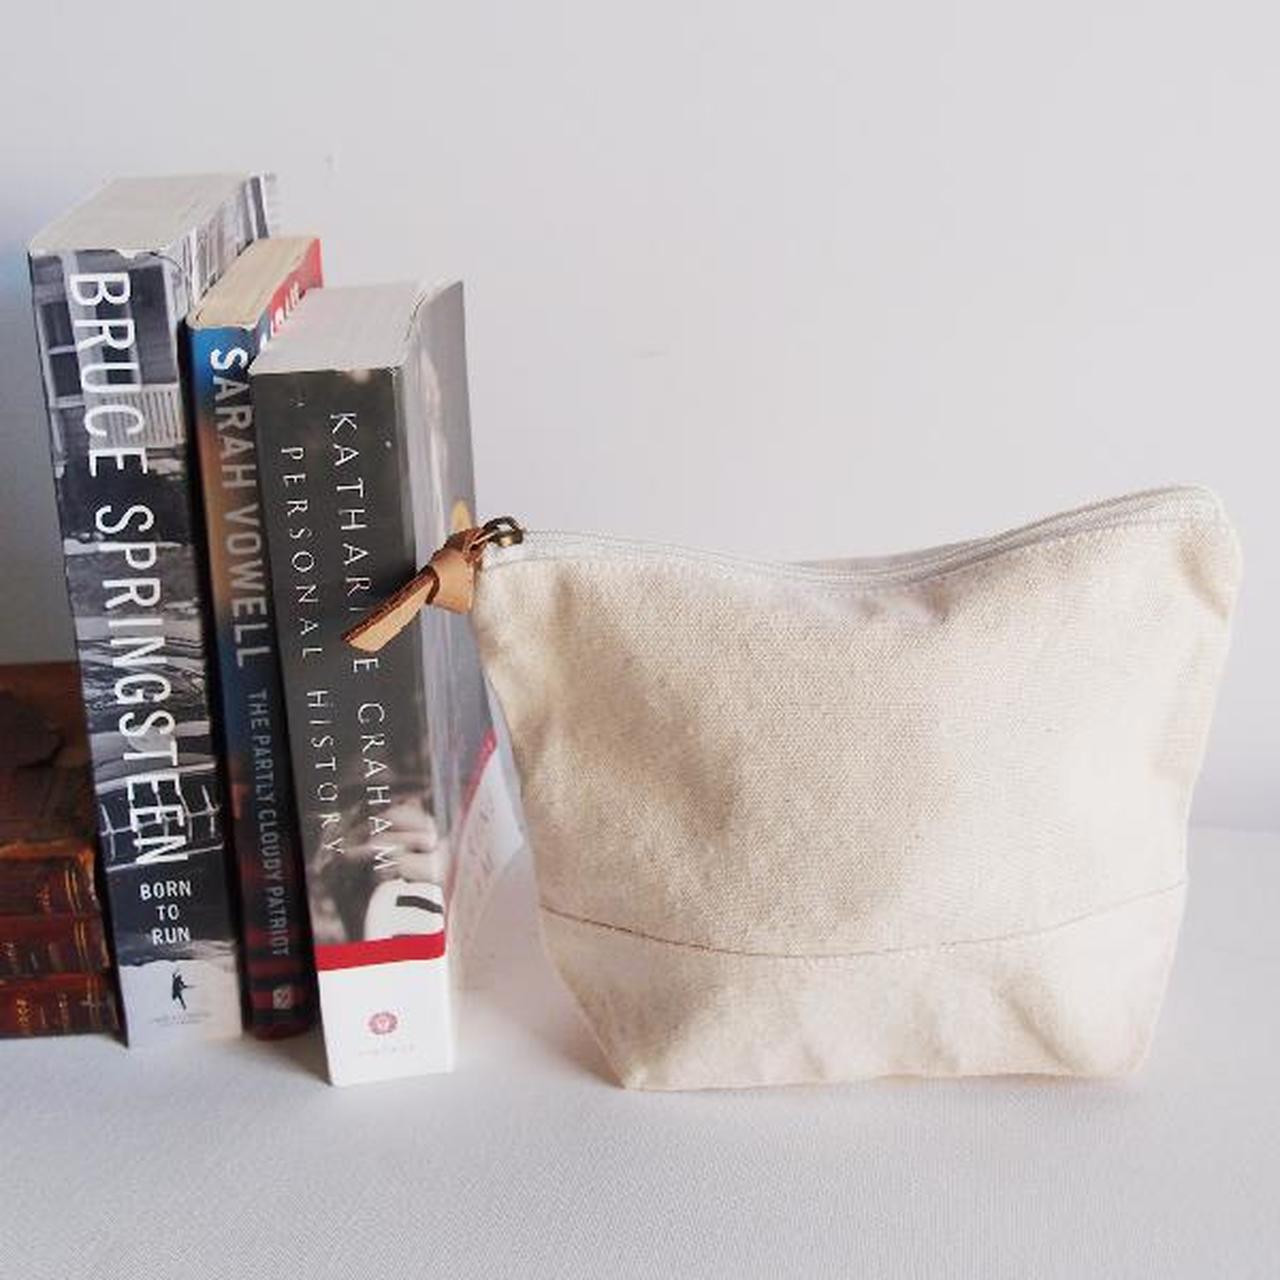 """Wholesale Zippered Pouches, Washed Canvas Zipper Pouch with Leather Puller Natural 8"""" x 6.3"""" x 2.4"""" Gusset B686-71, Cotton Zipper Pouch Supplier 